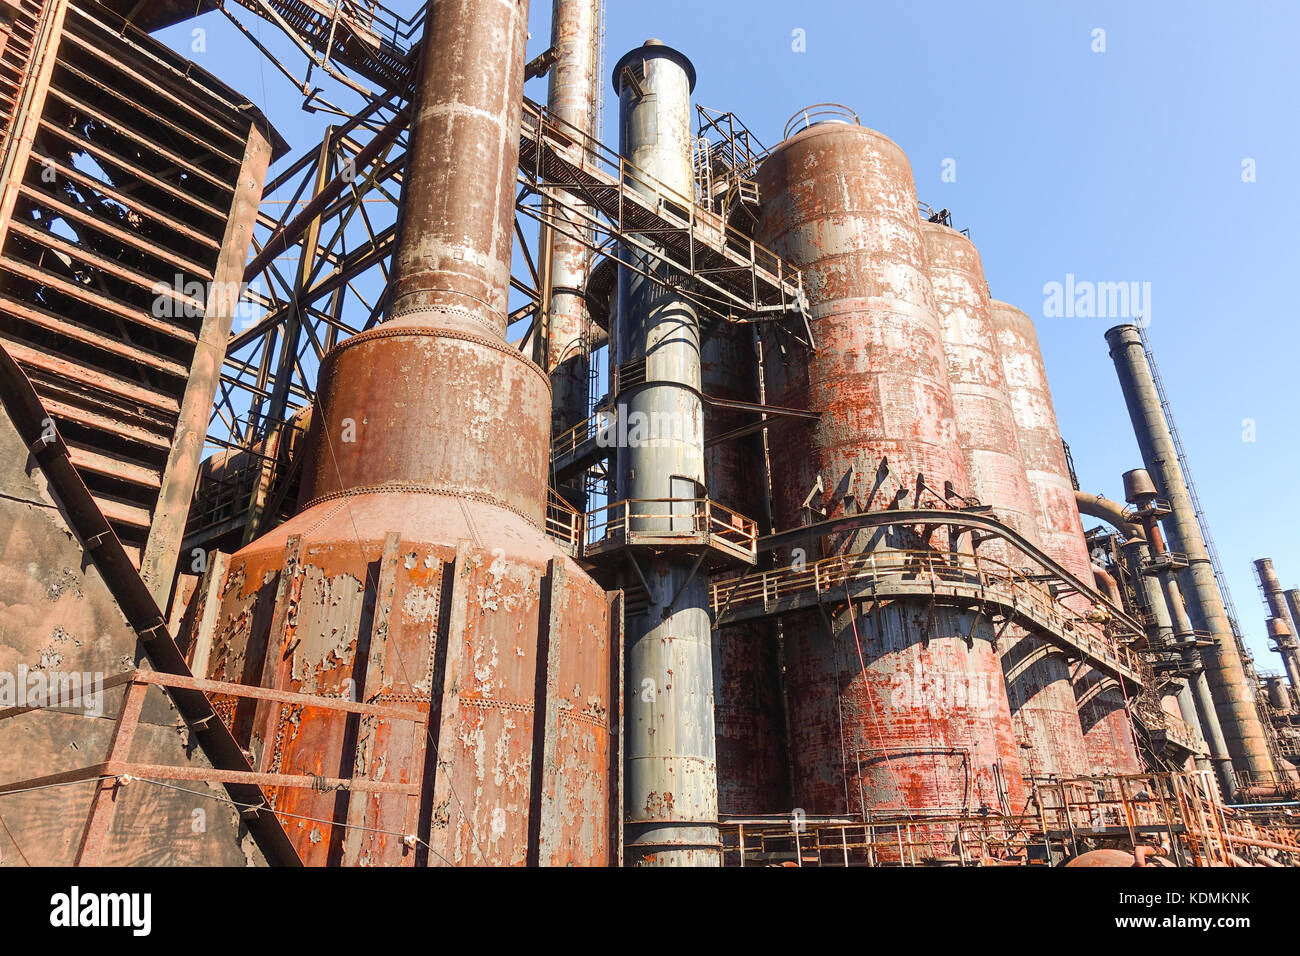 The Bethlehem Steel Stacks Stock Photos and Images